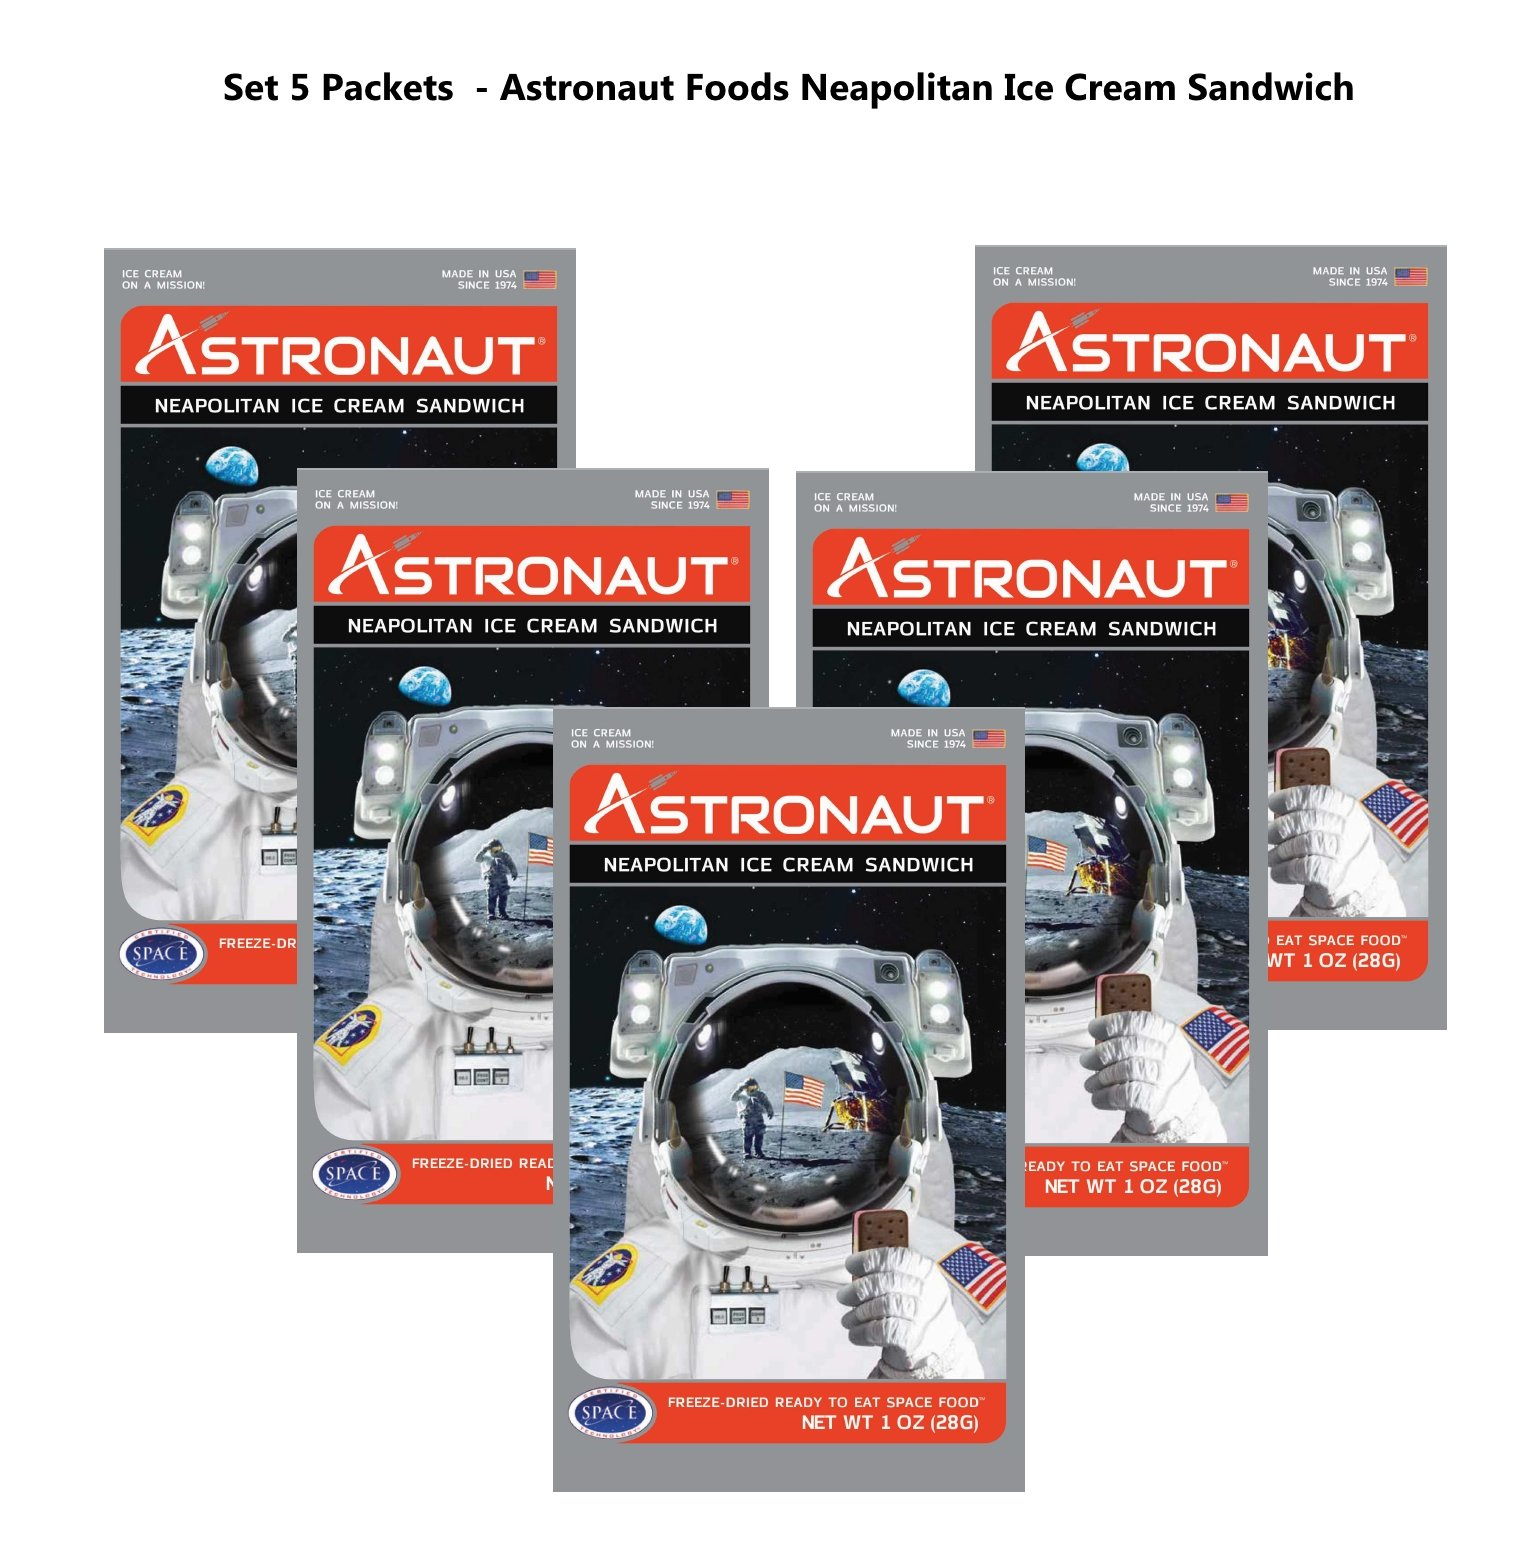 Astronaut Foods Neapolitan Ice Cream Sandwich Space Food (5 Packets)